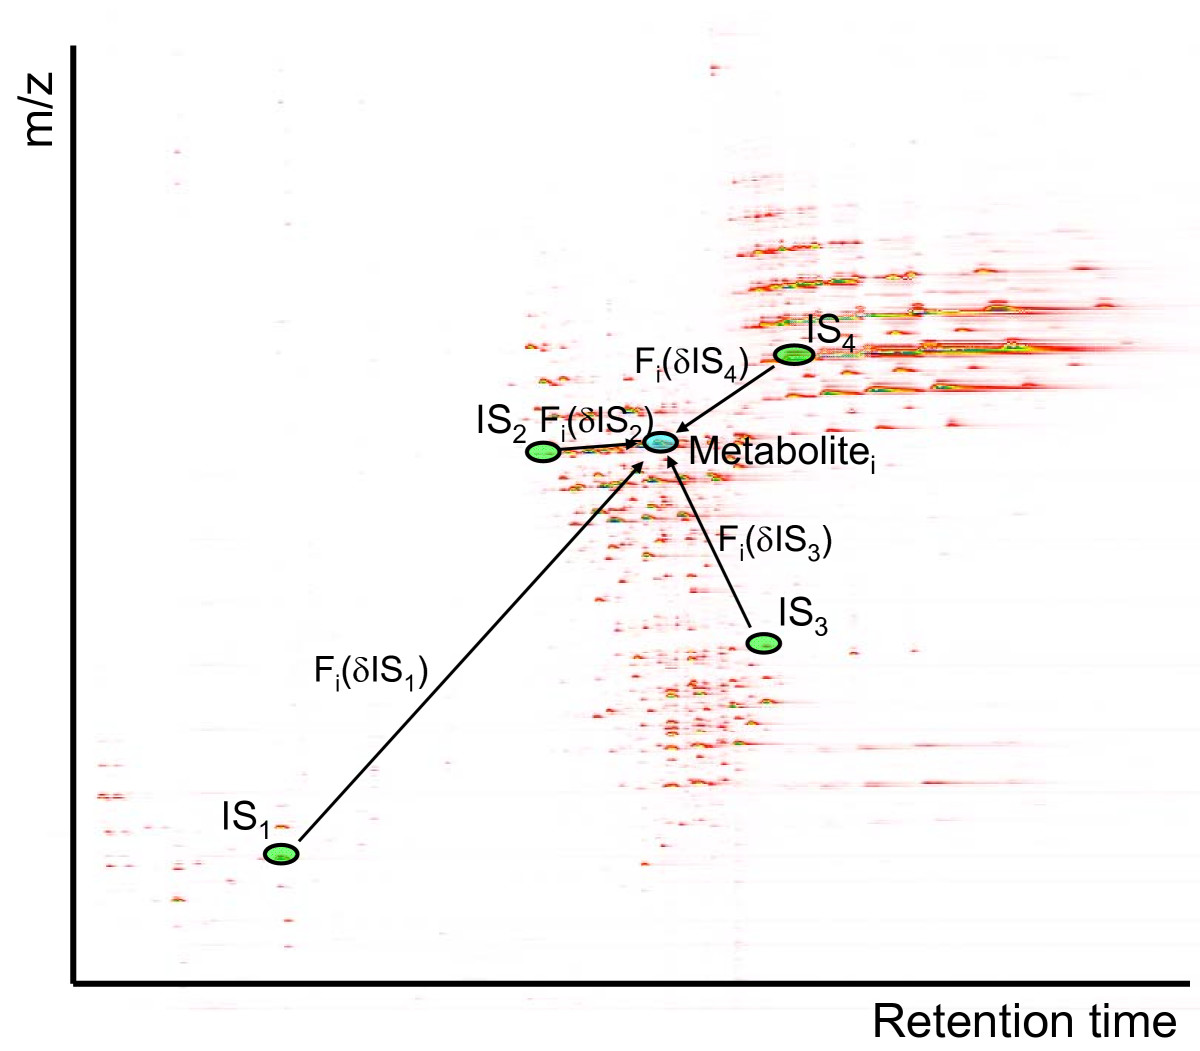 https://static-content.springer.com/image/art%3A10.1186%2F1471-2105-8-93/MediaObjects/12859_2006_Article_1465_Fig2_HTML.jpg